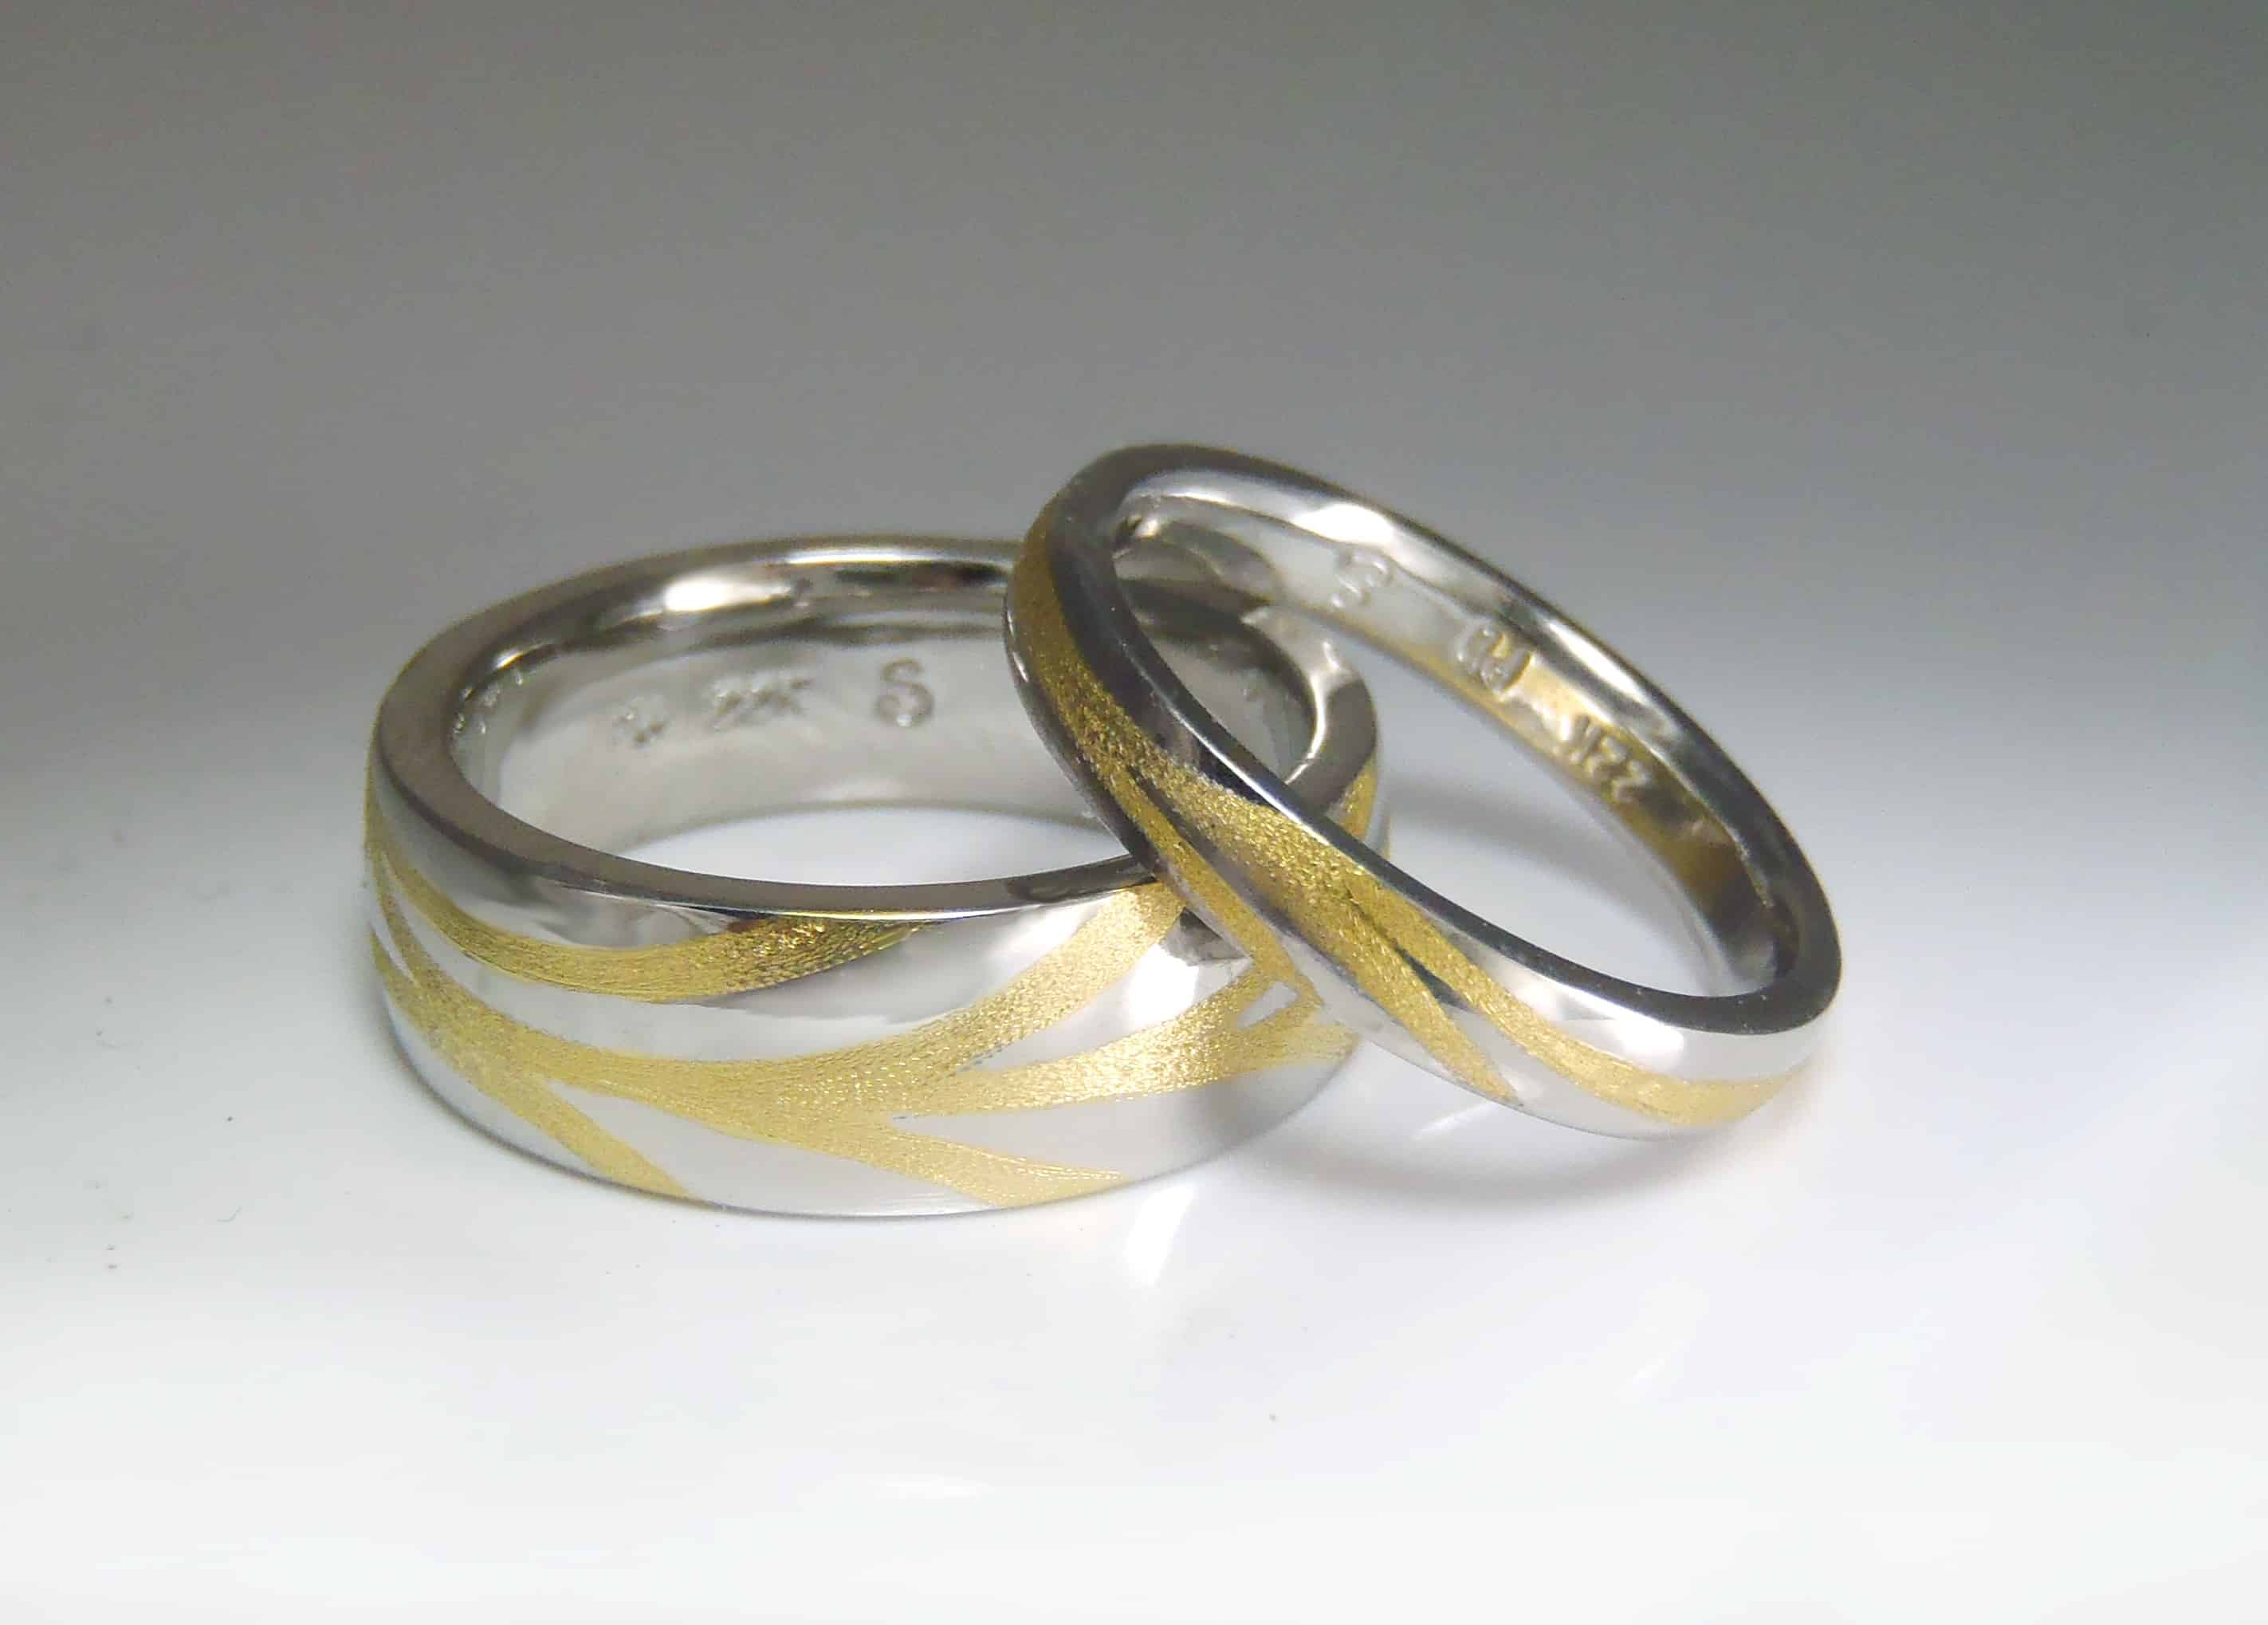 Palladium 22k inlaid wedding bands